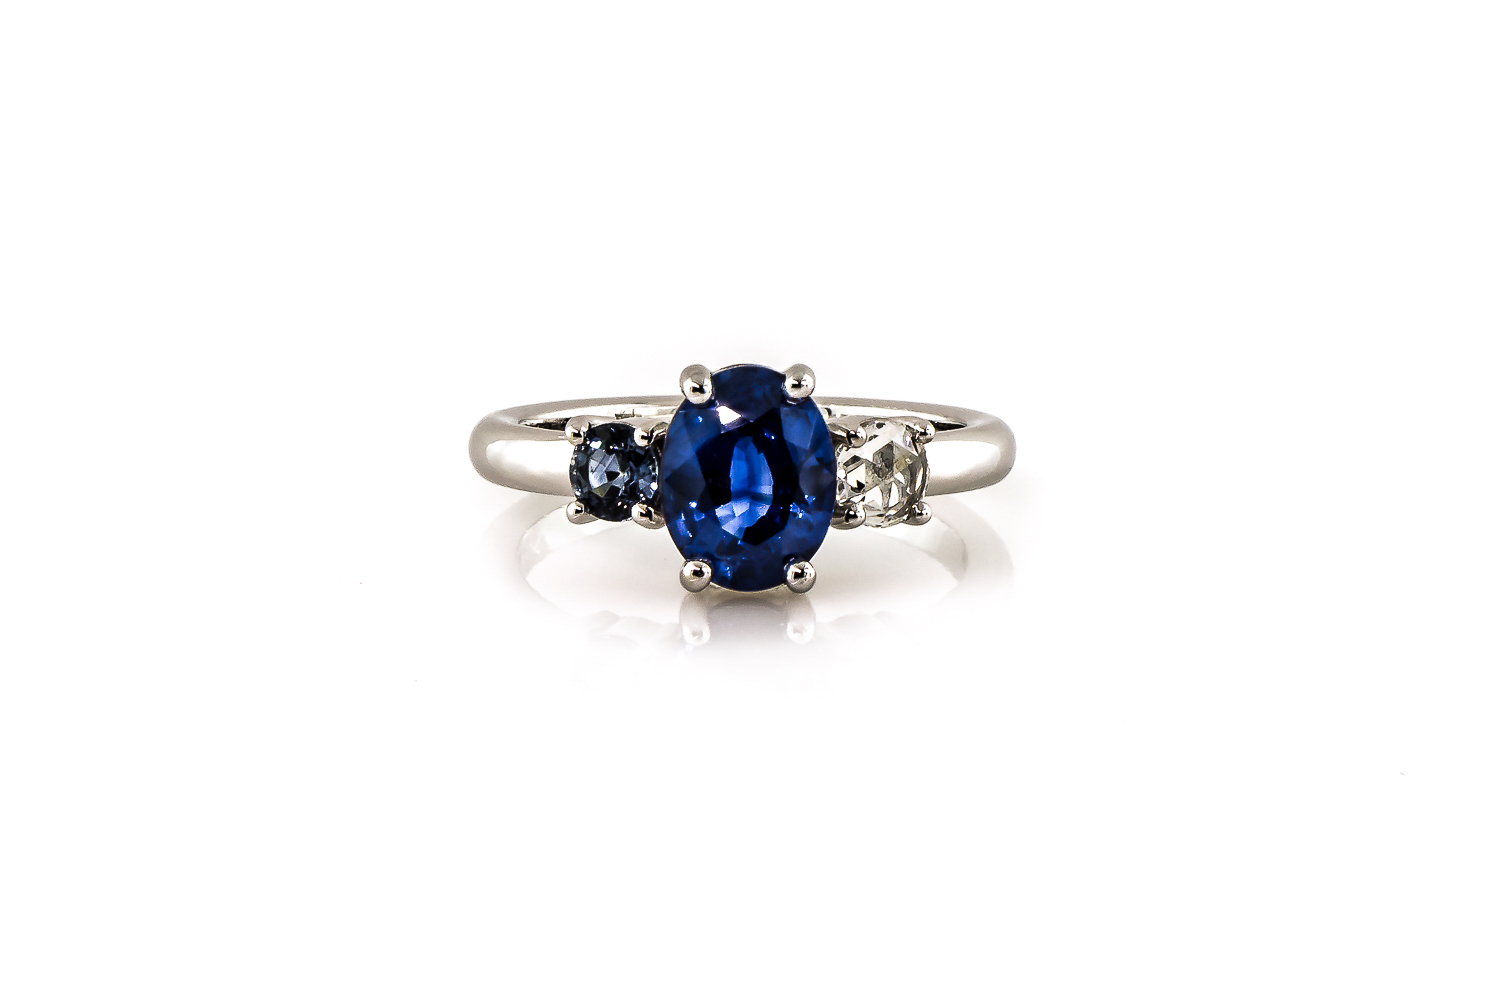 austin private jewelers lawson sapphire ring head on.jpg